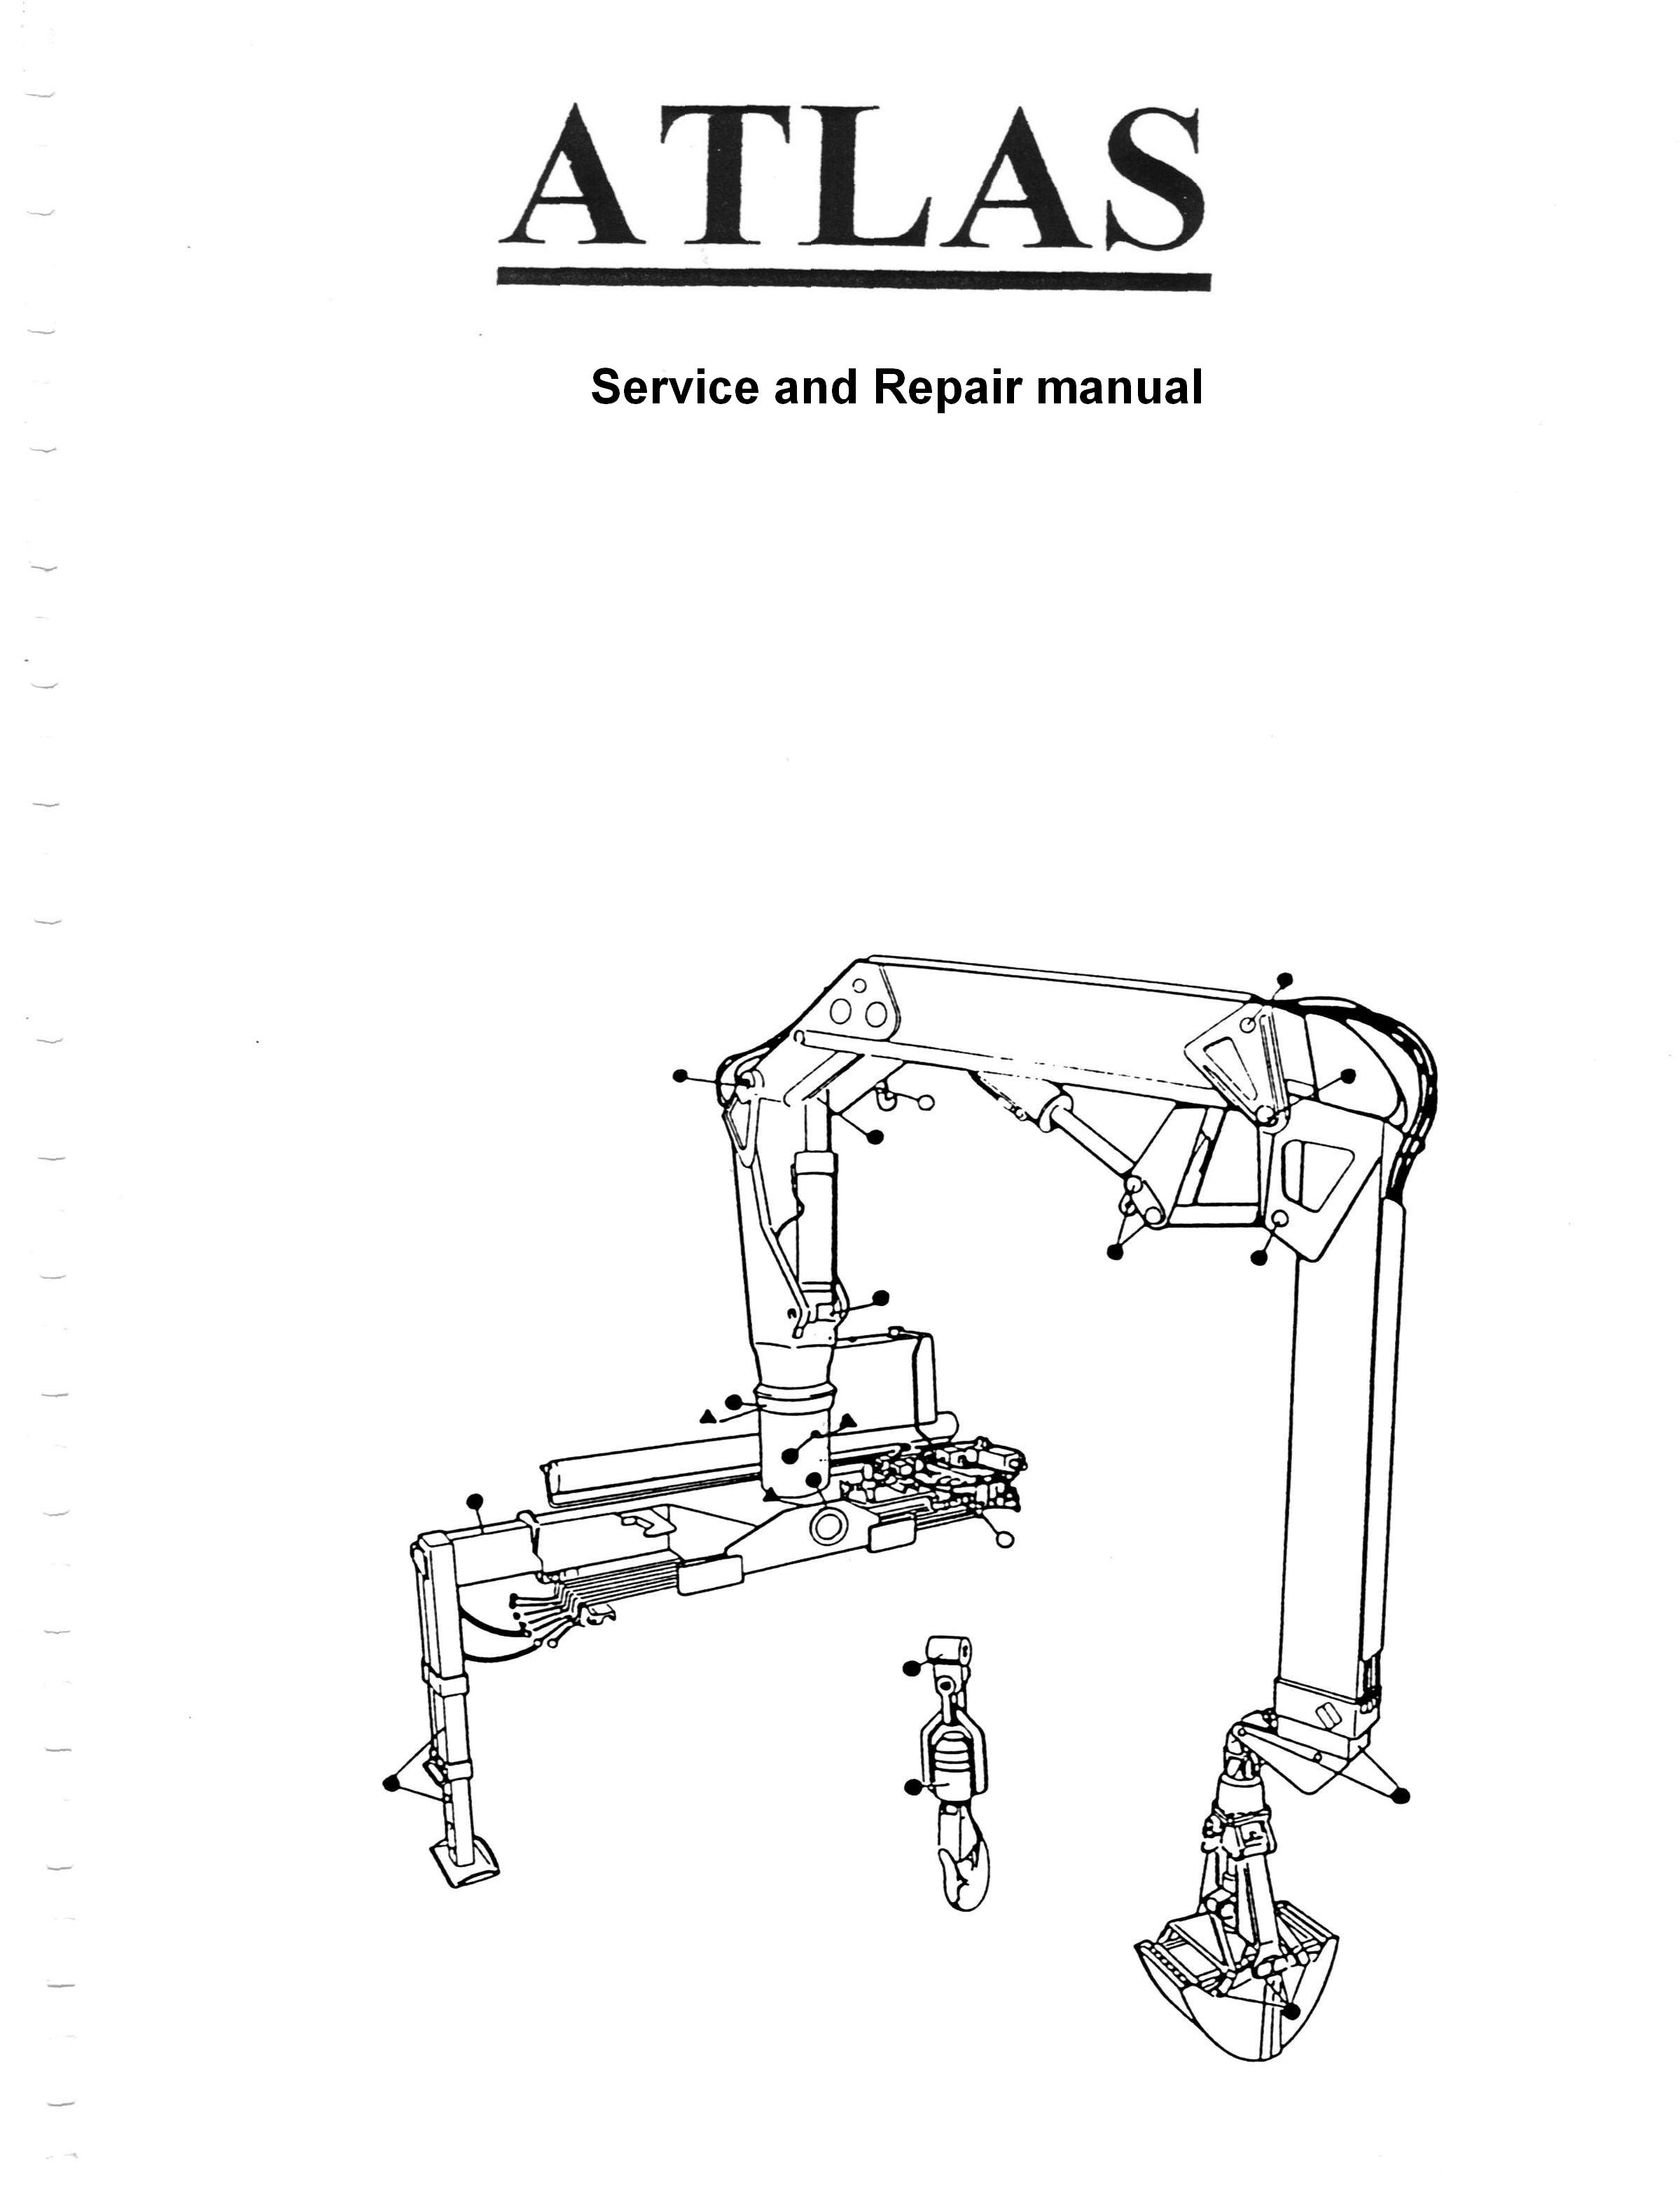 atlas 100 0 crane service manual